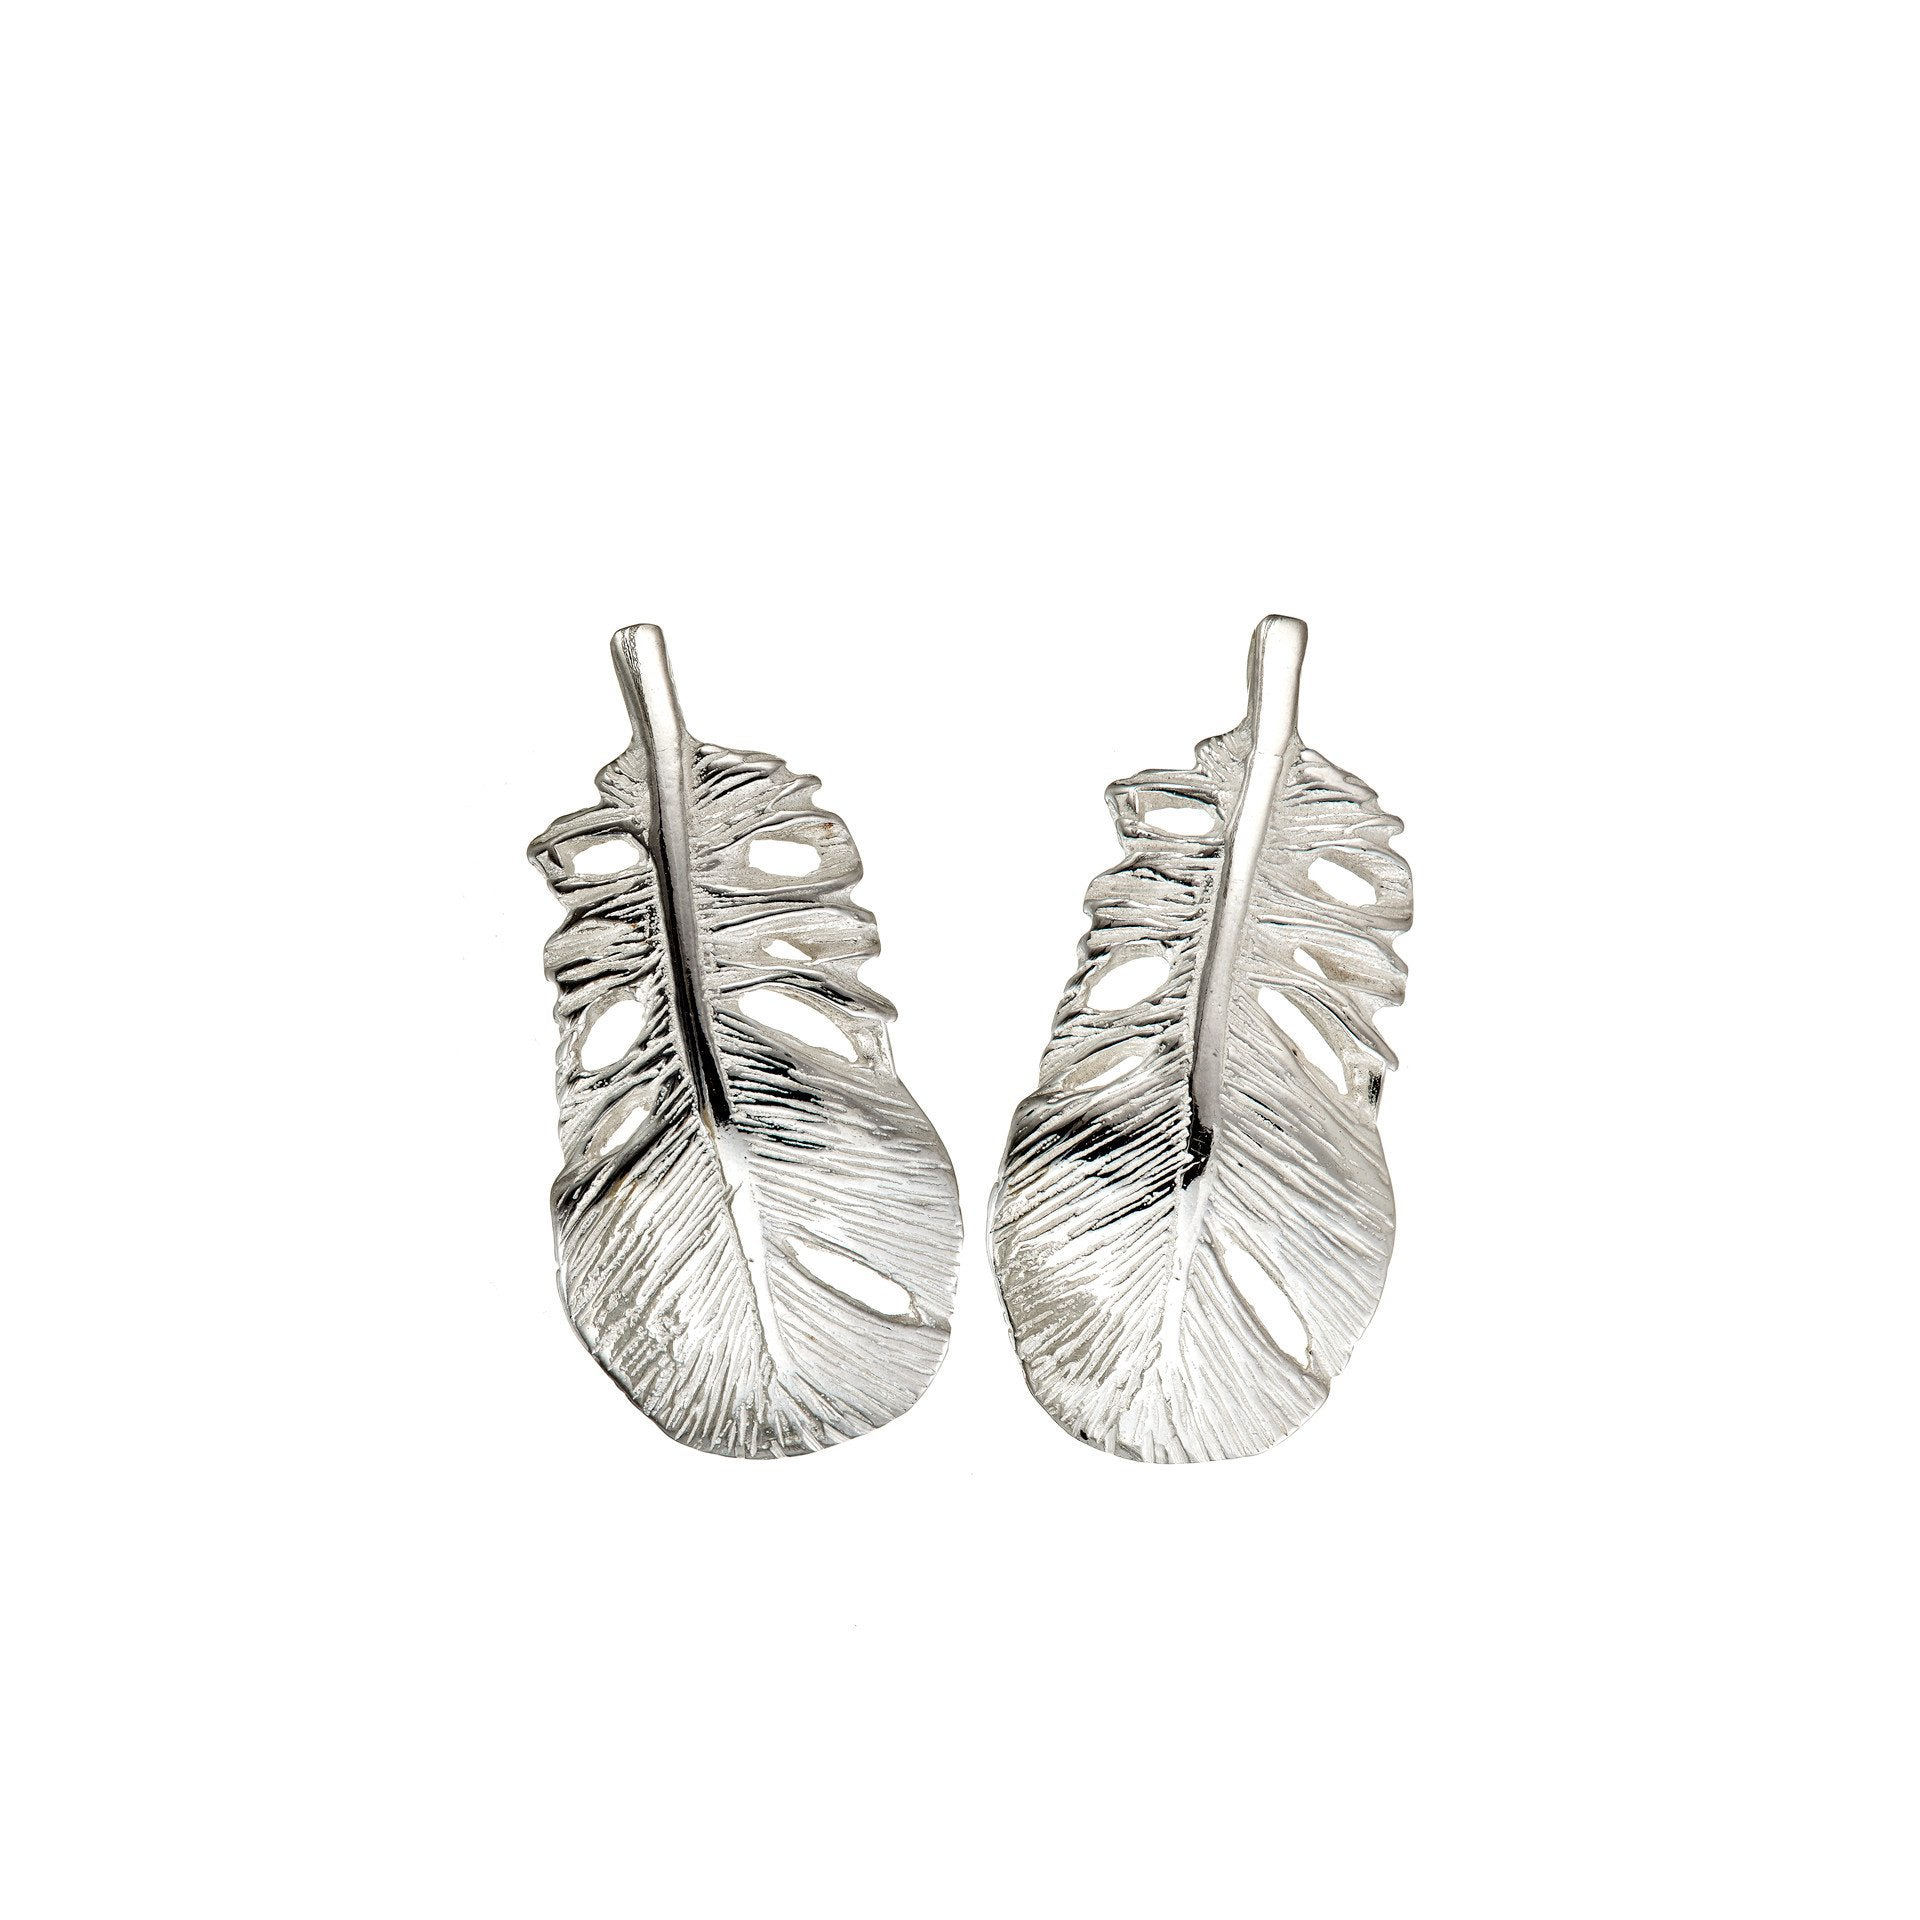 Baby Angel Feather Studs Earrings are a special reminder of the Angels watching over us.